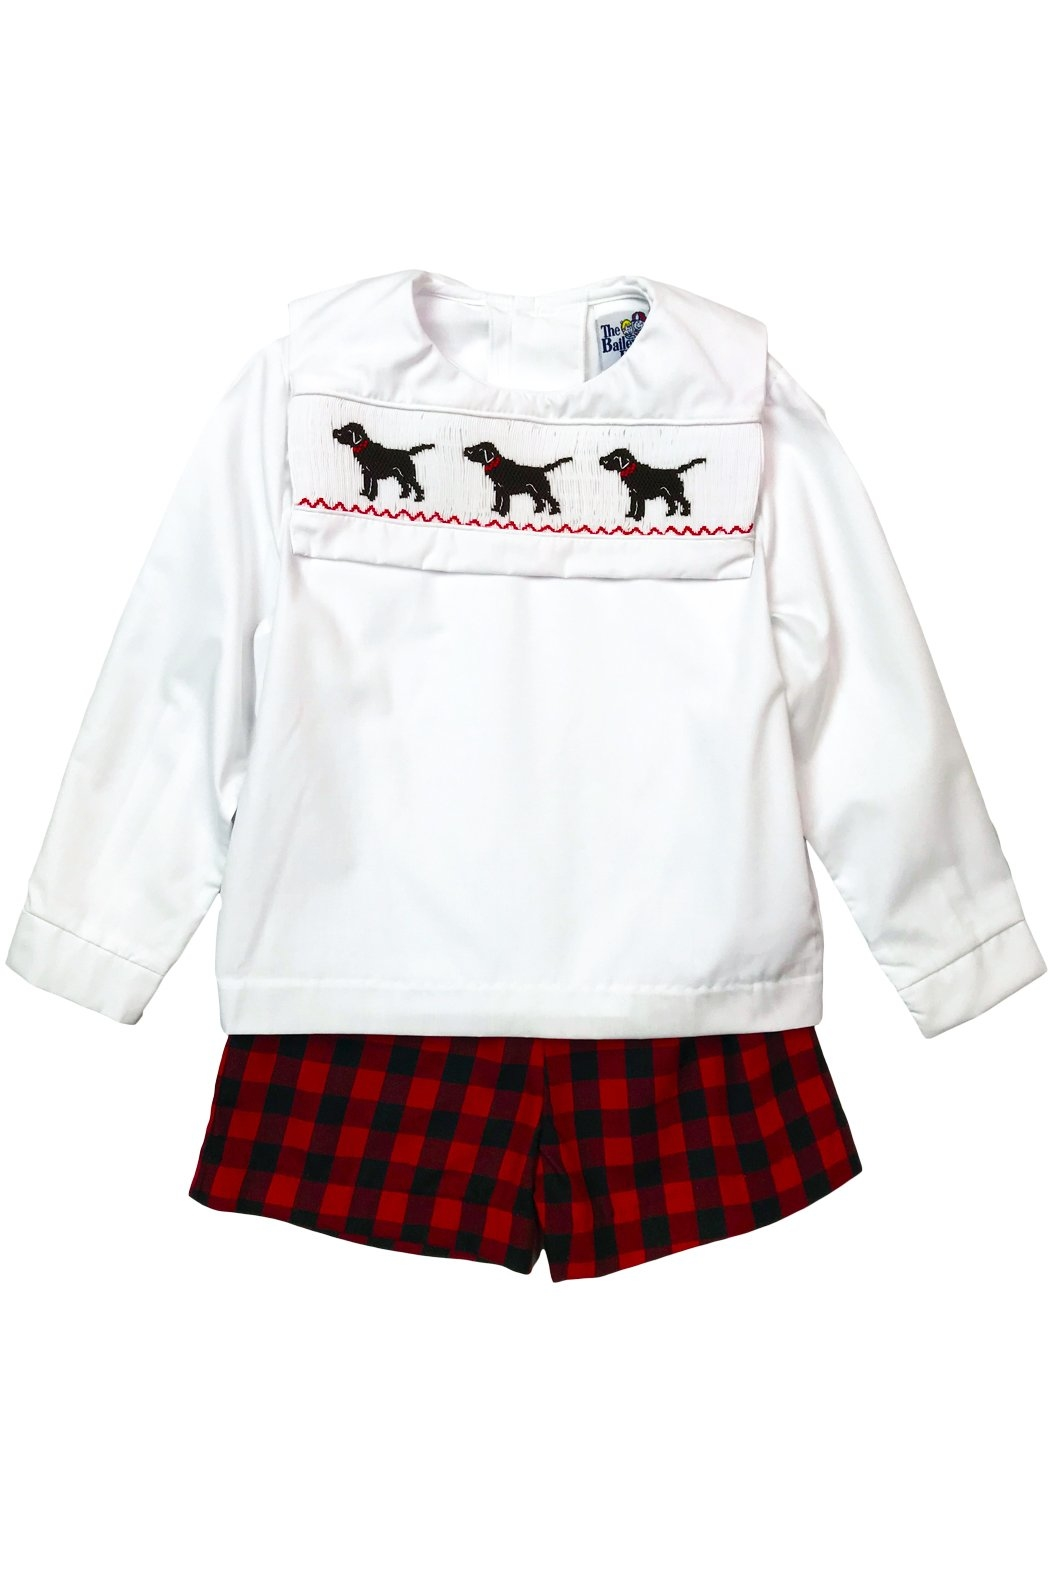 Bailey Boys Smocked Puppy Dog Dressy Short Set - Side Cropped Image